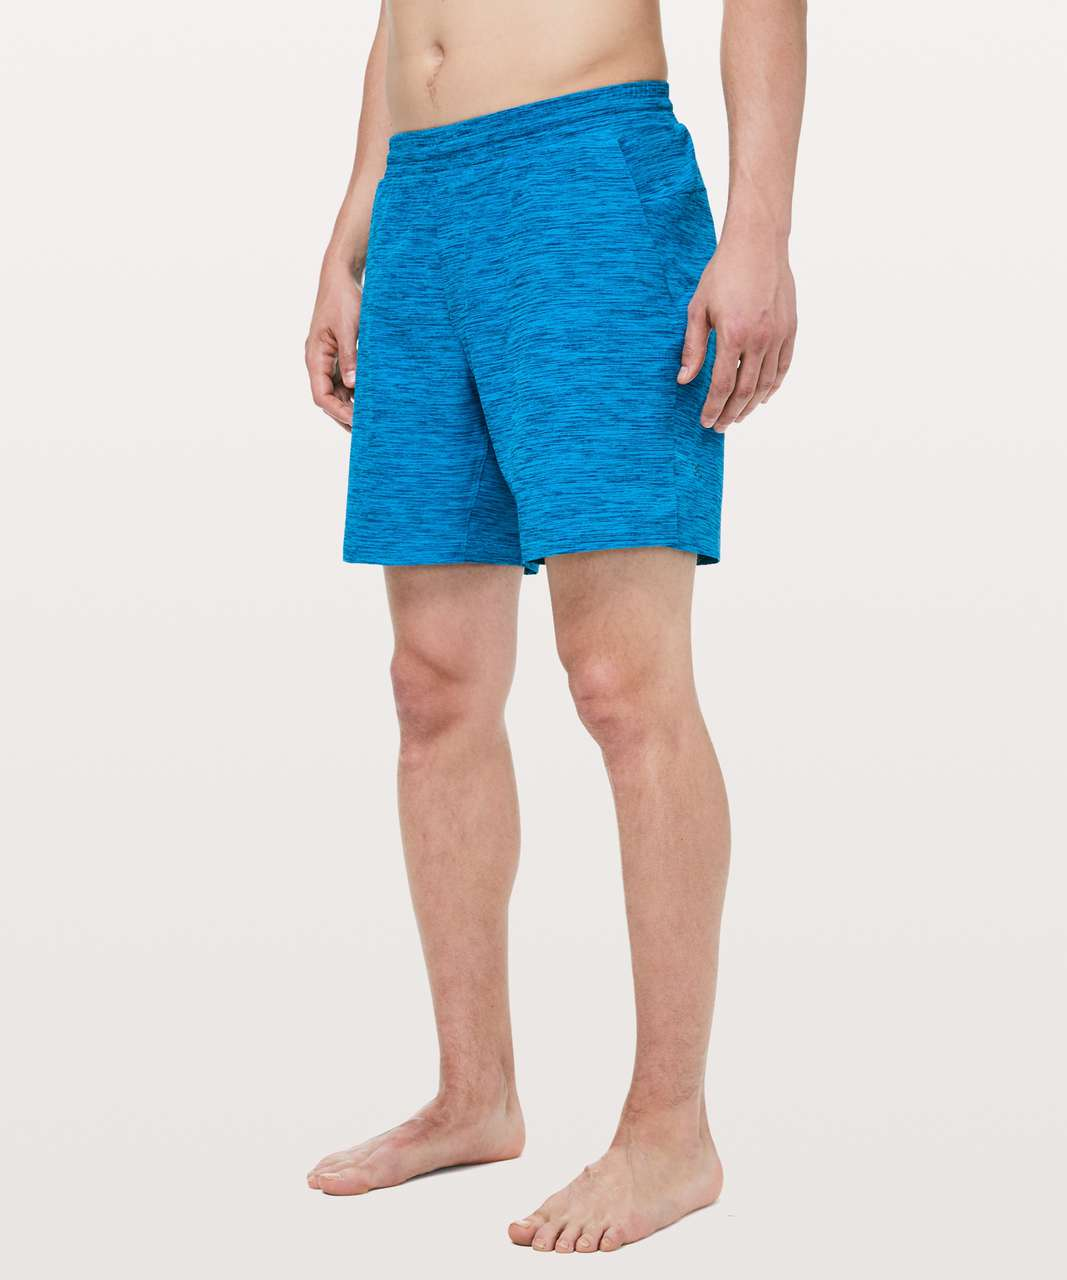 "Lululemon Channel Cross Swim Short *7"" - Invert Heather Vivid Aqua Deep Marine"